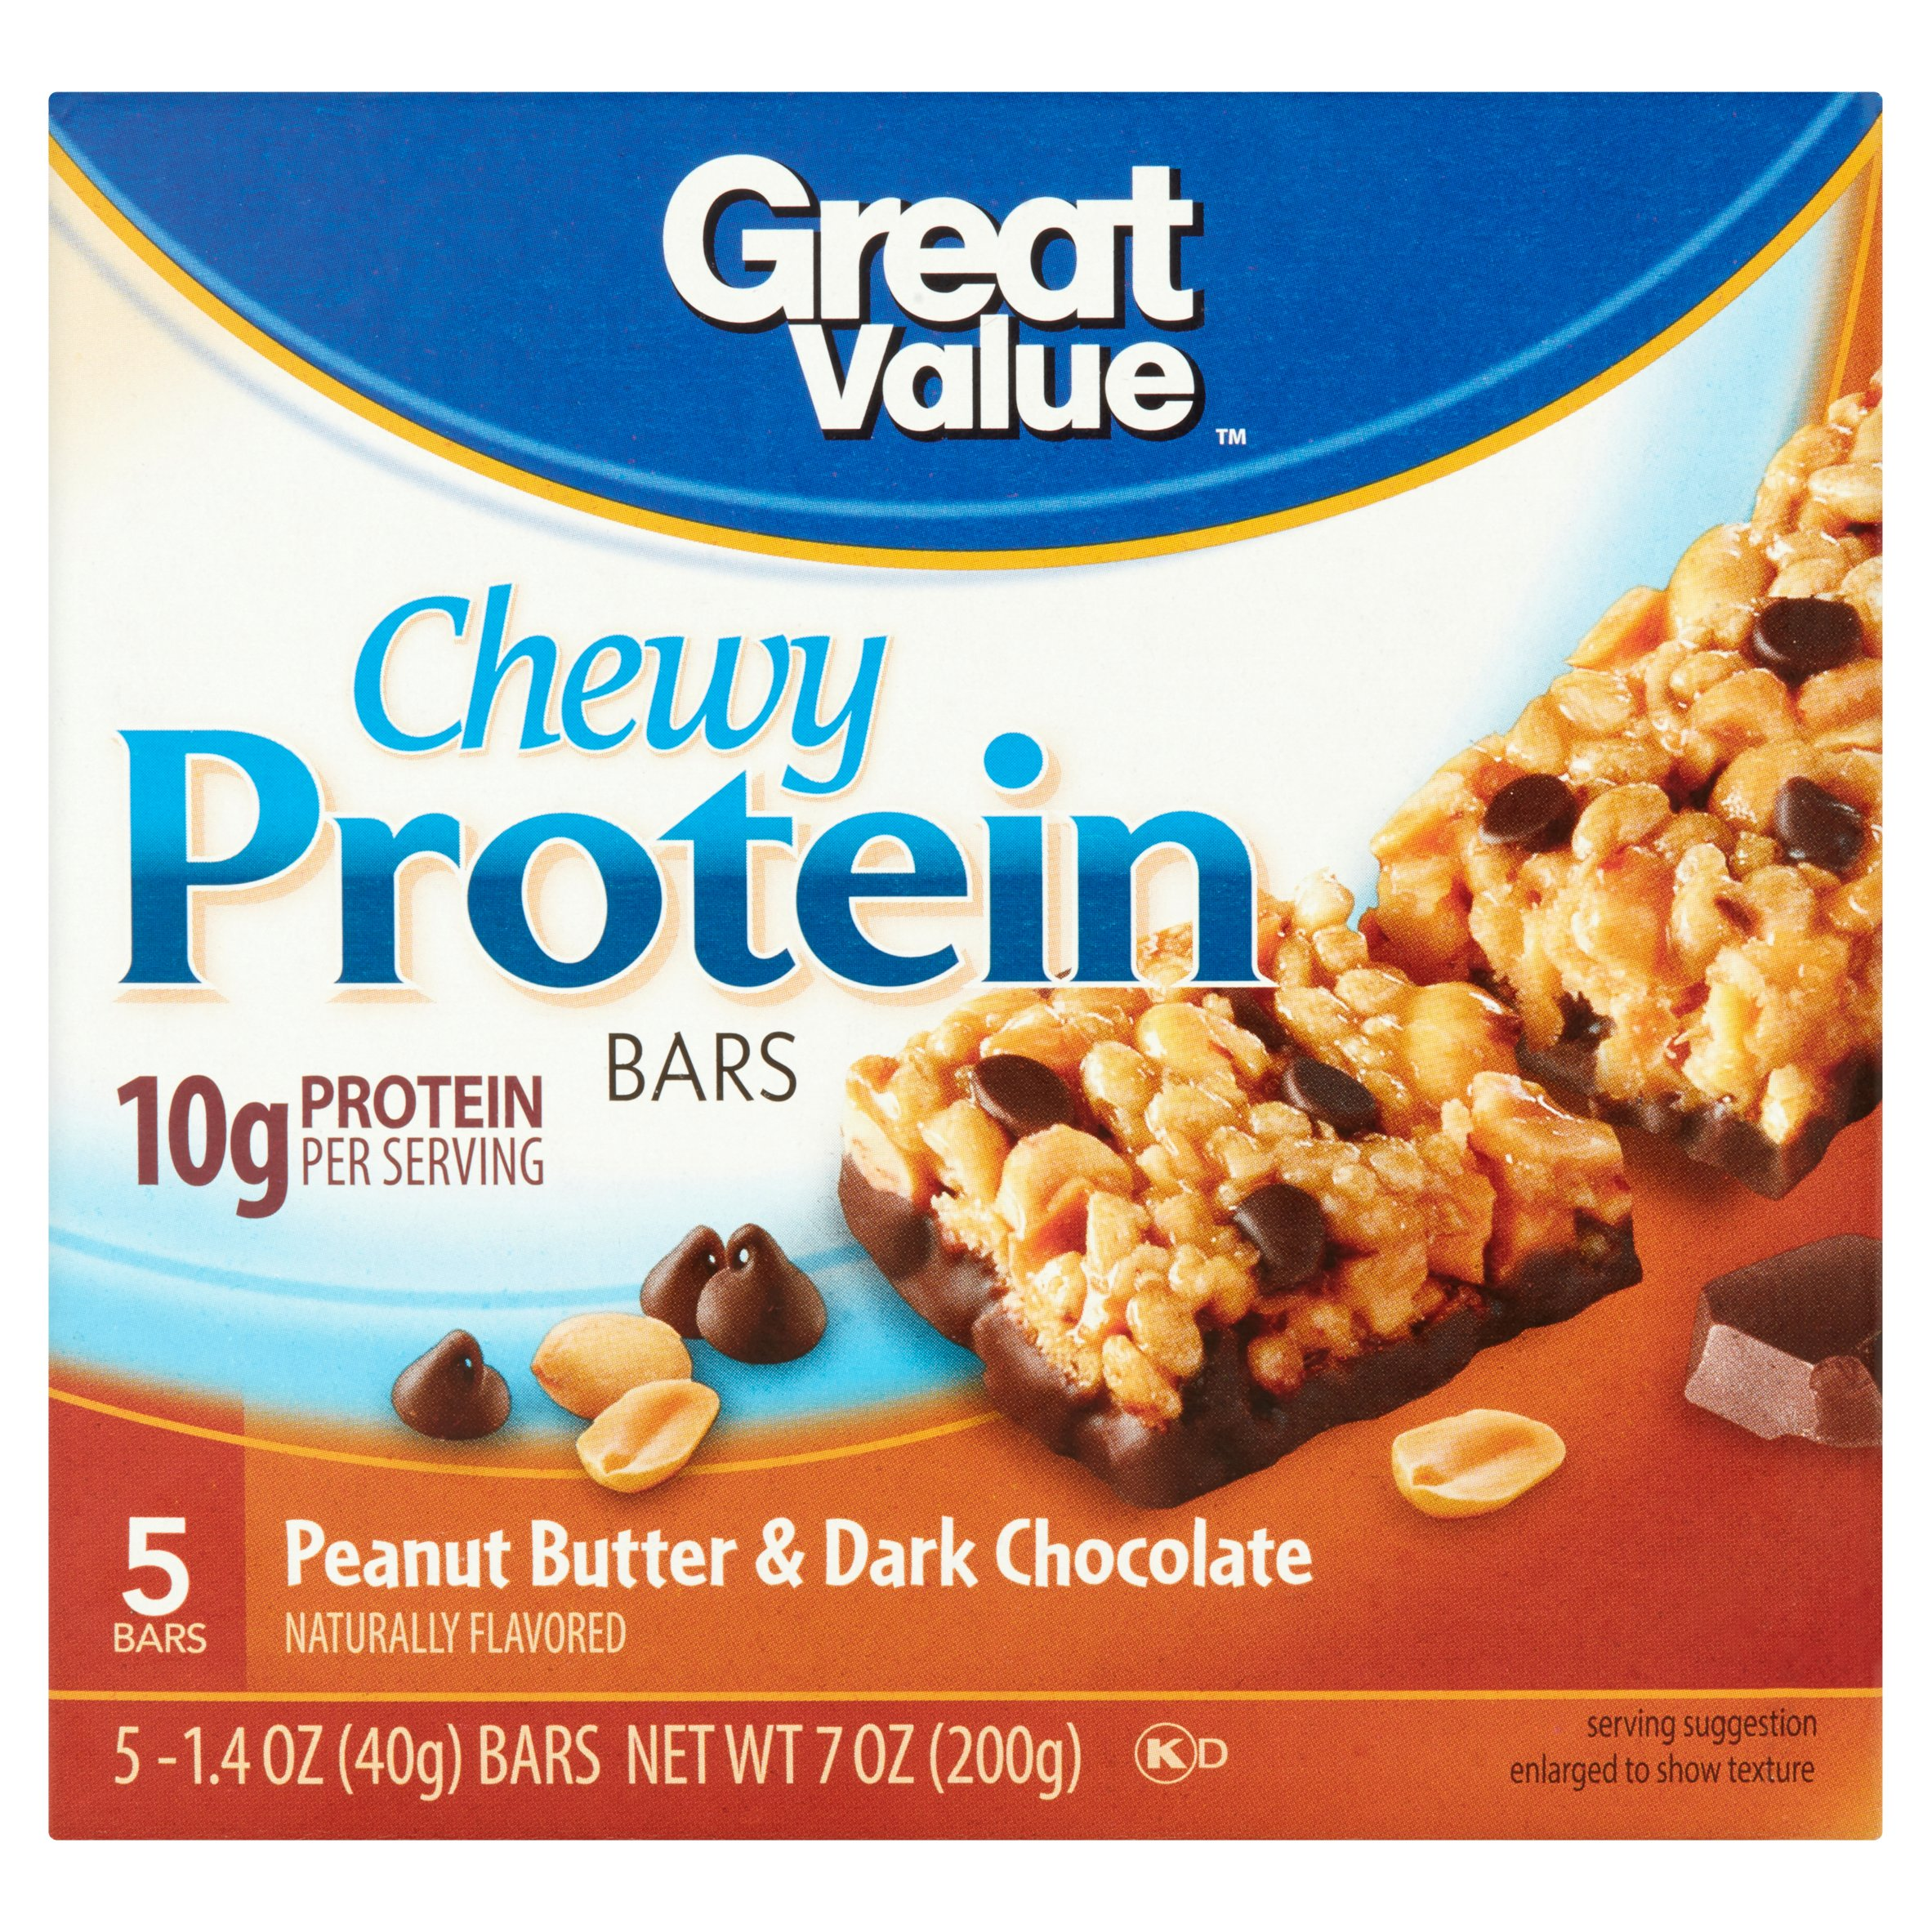 Great Value Chewy Protein Bars, Peanut Butter & Dark Chocolate, 5 Count